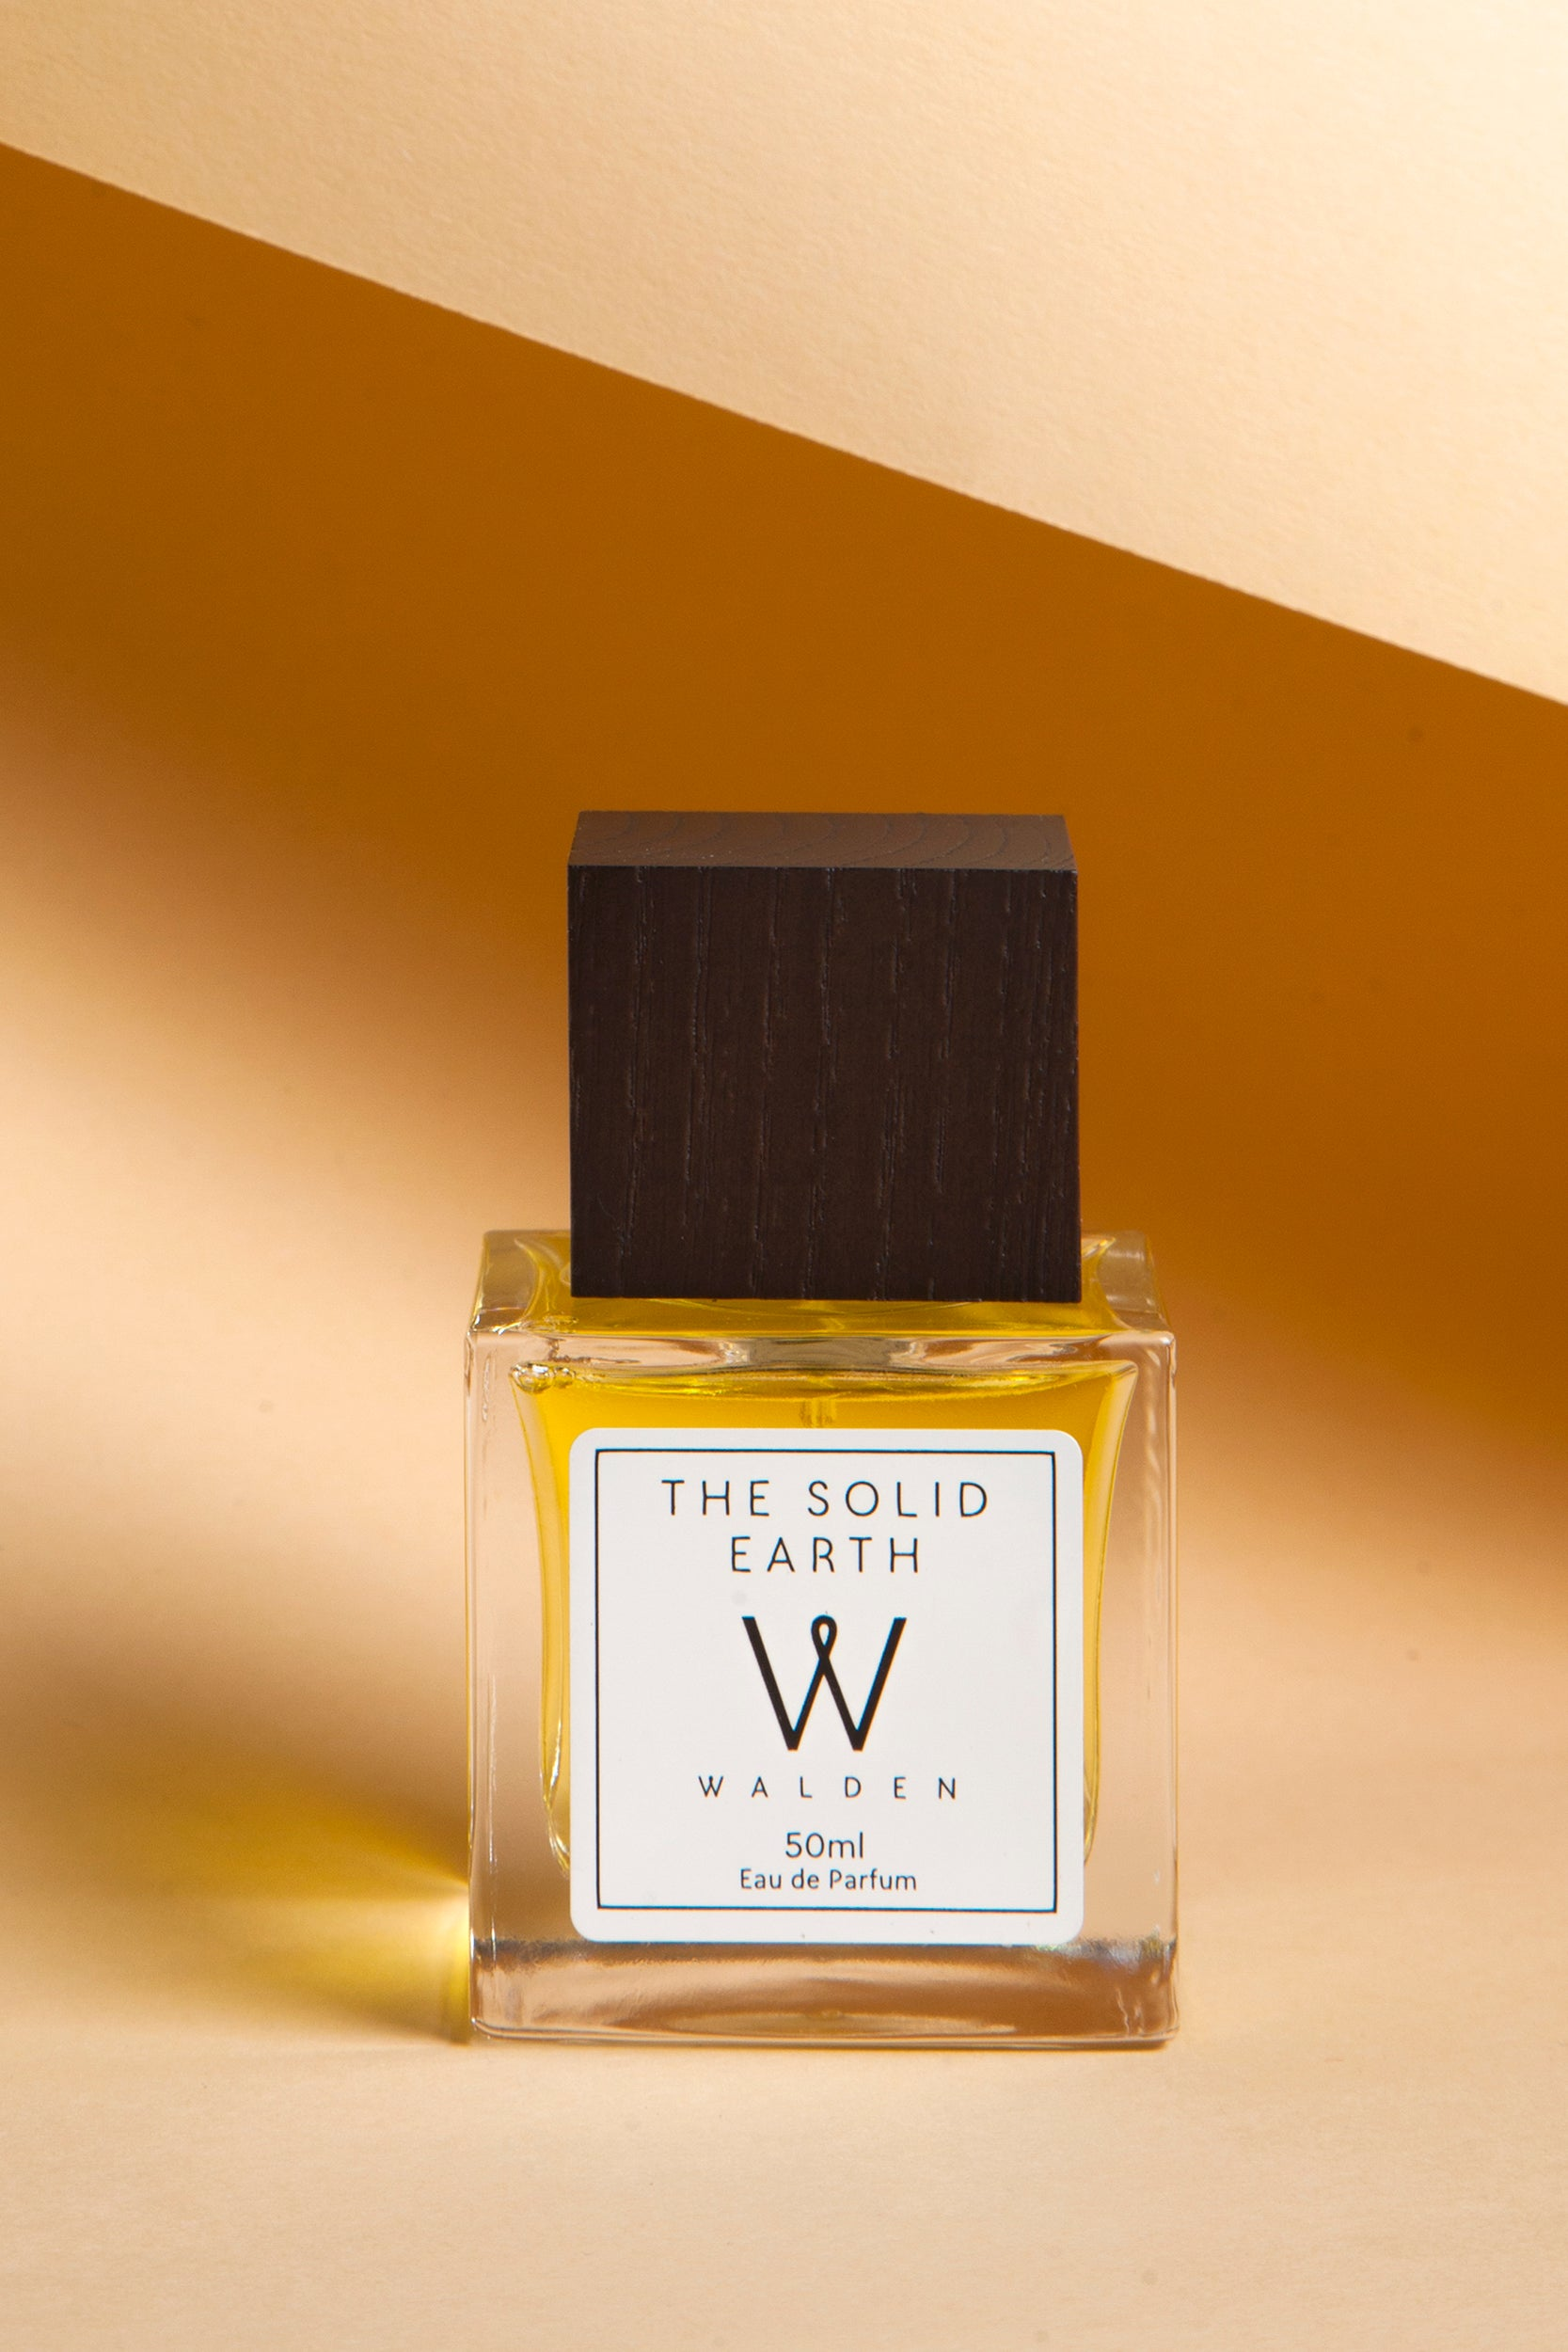 Walden's The Solid Earth | Beauty | Walden Perfumes | [product_tag] - Fair Bazaar Ethical Living